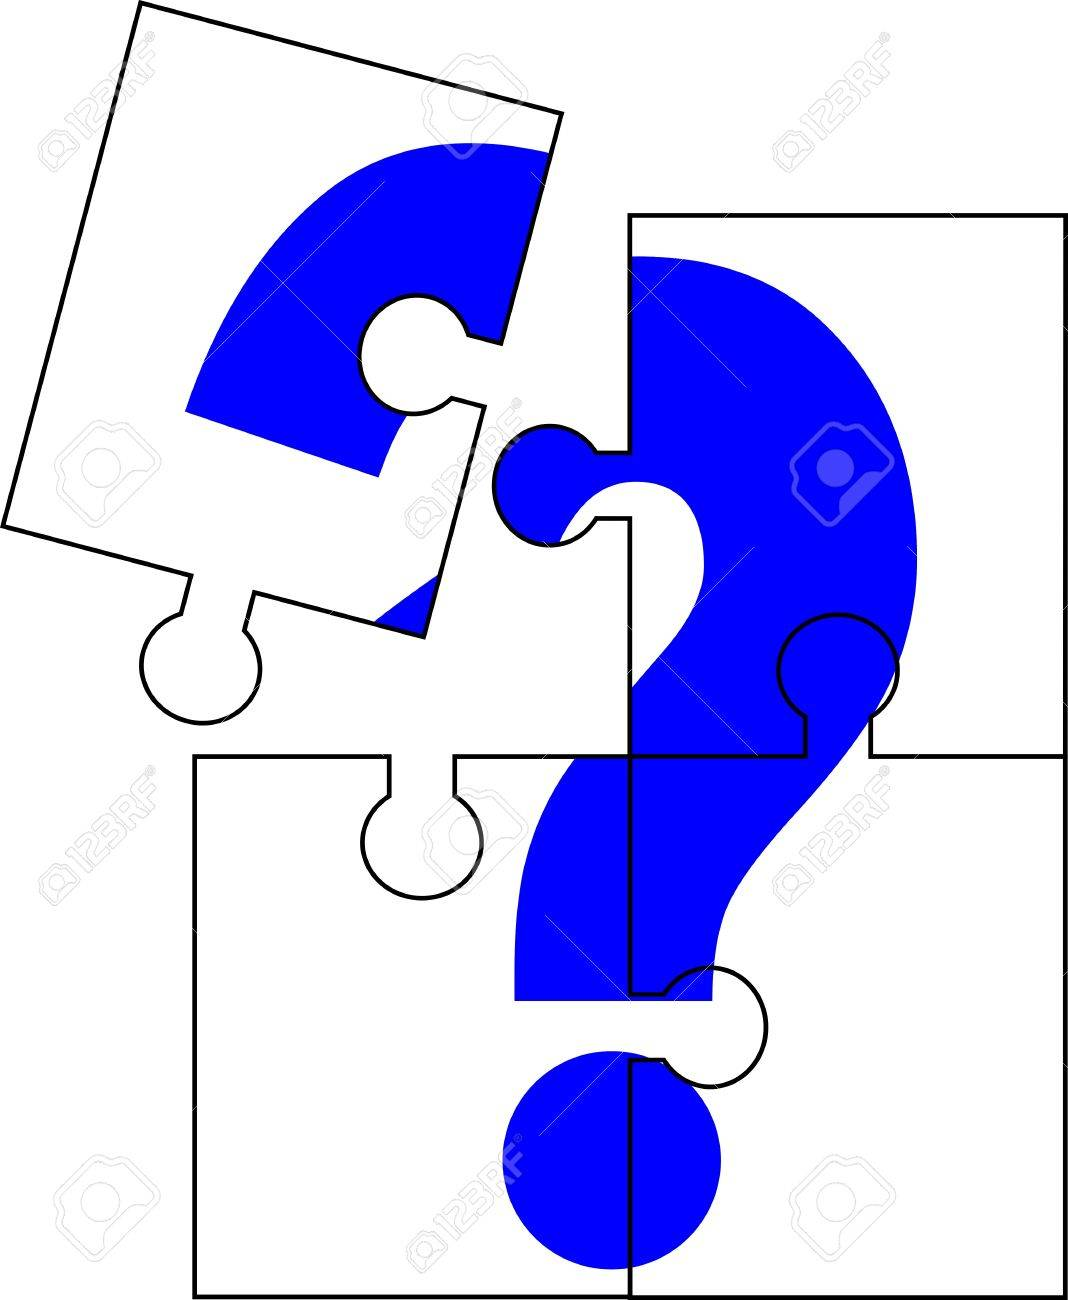 Puzzle Of Four Parts Forming A Question Mark Royalty Free Cliparts ...